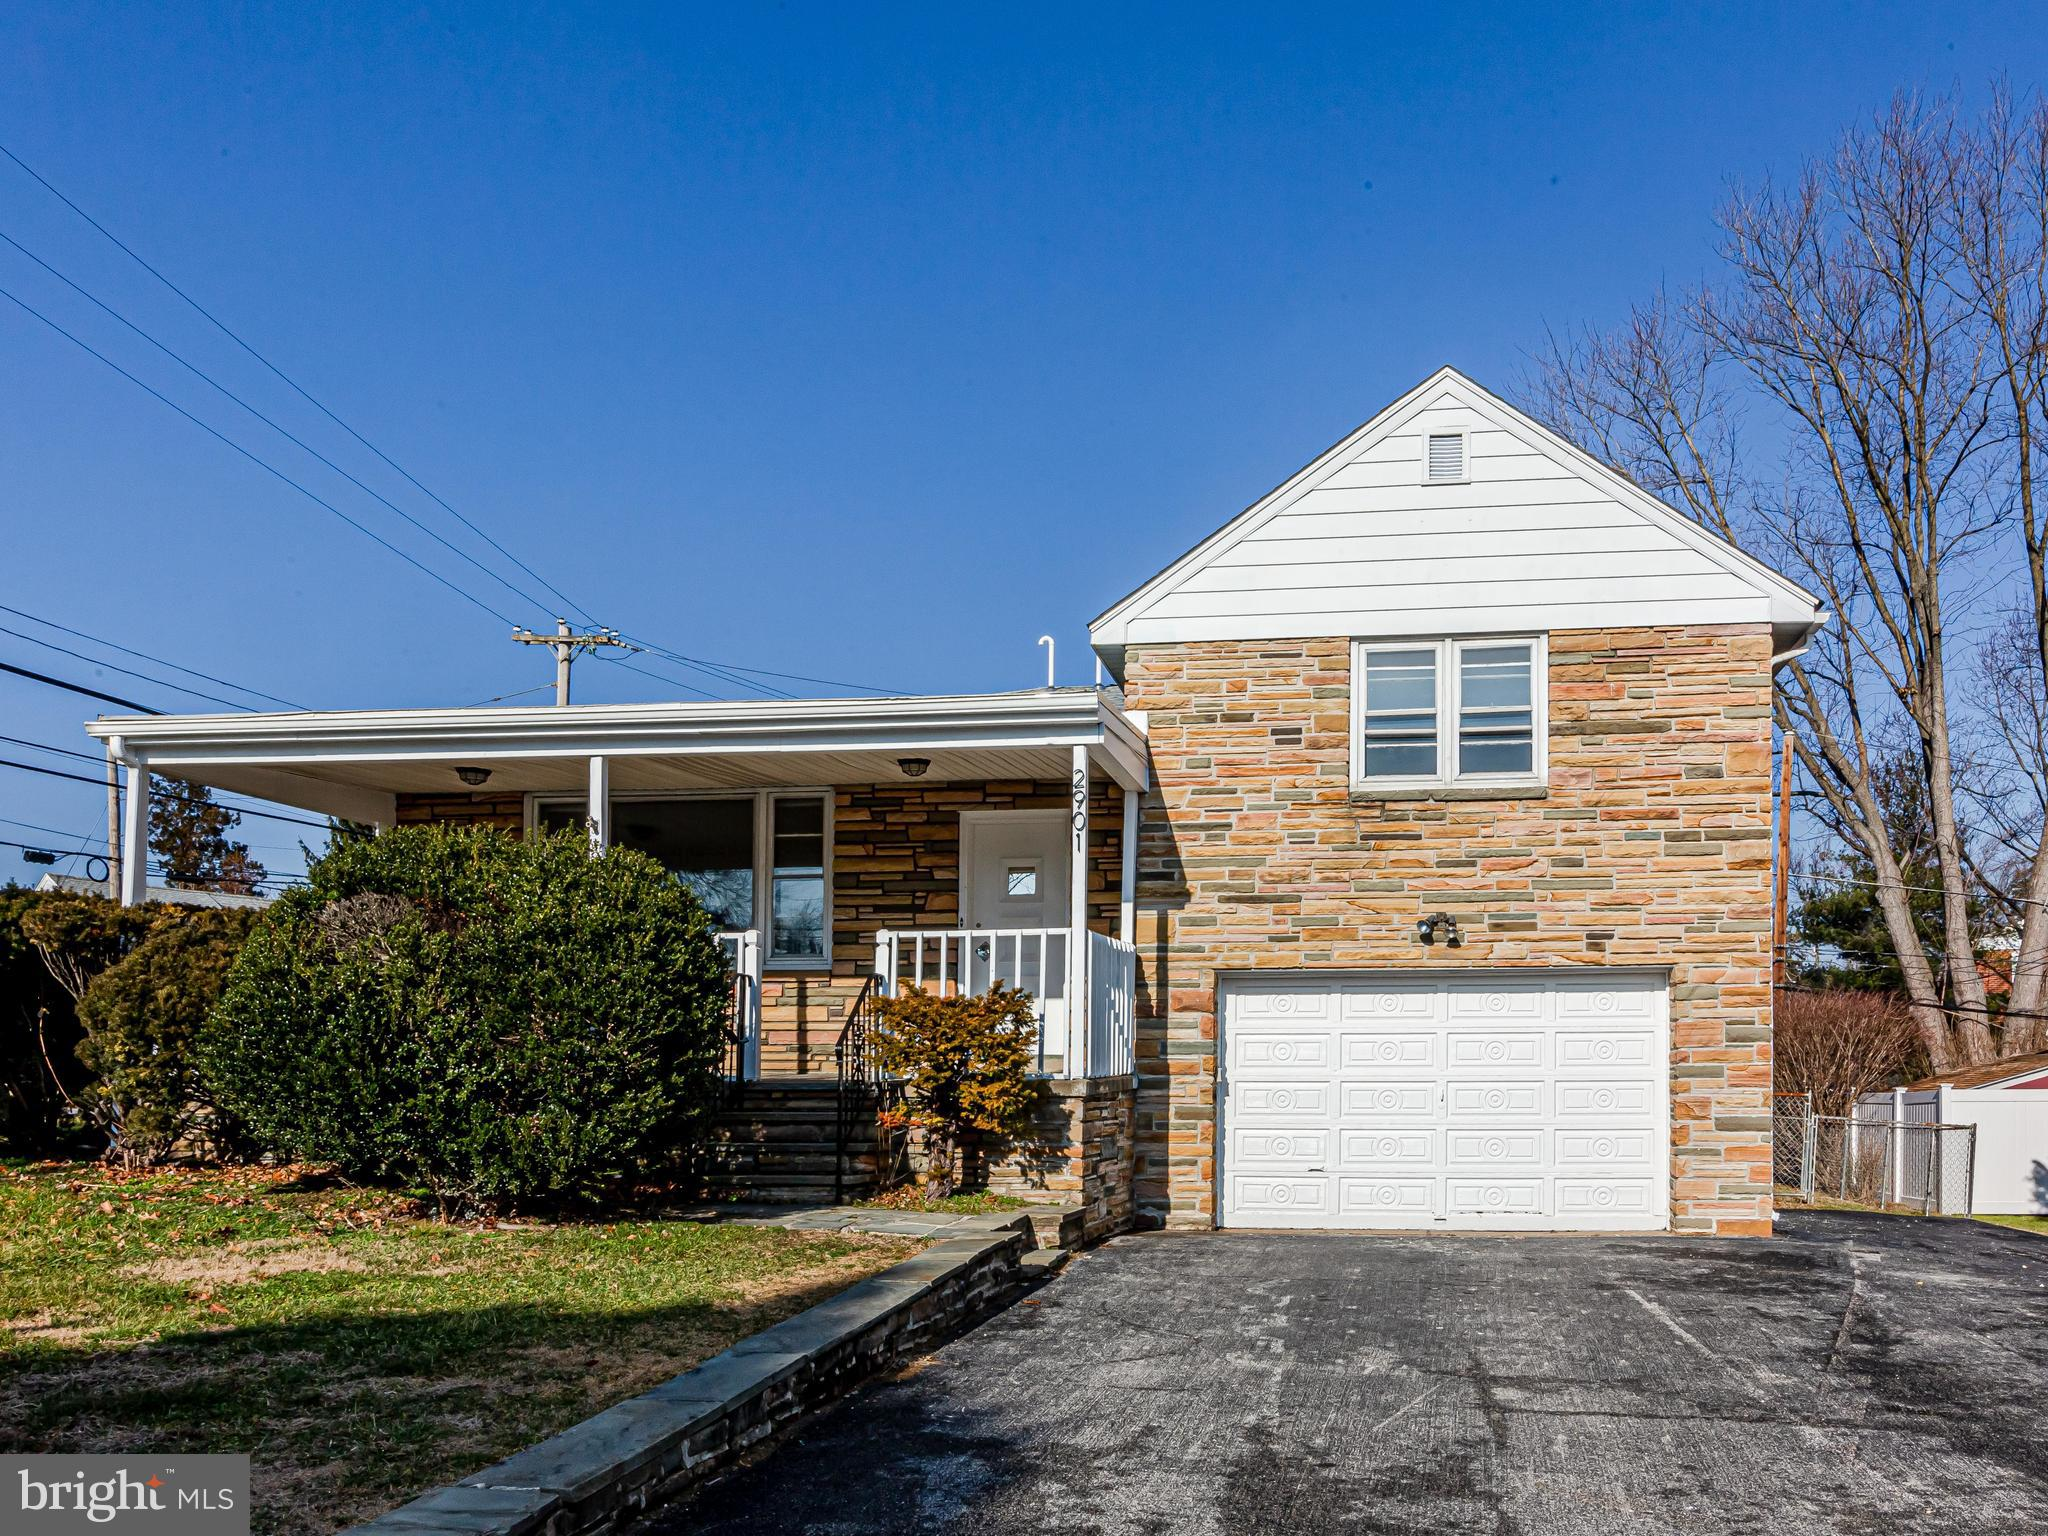 2901 ARMSTRONG AVENUE, CLIFTON HEIGHTS, PA 19018